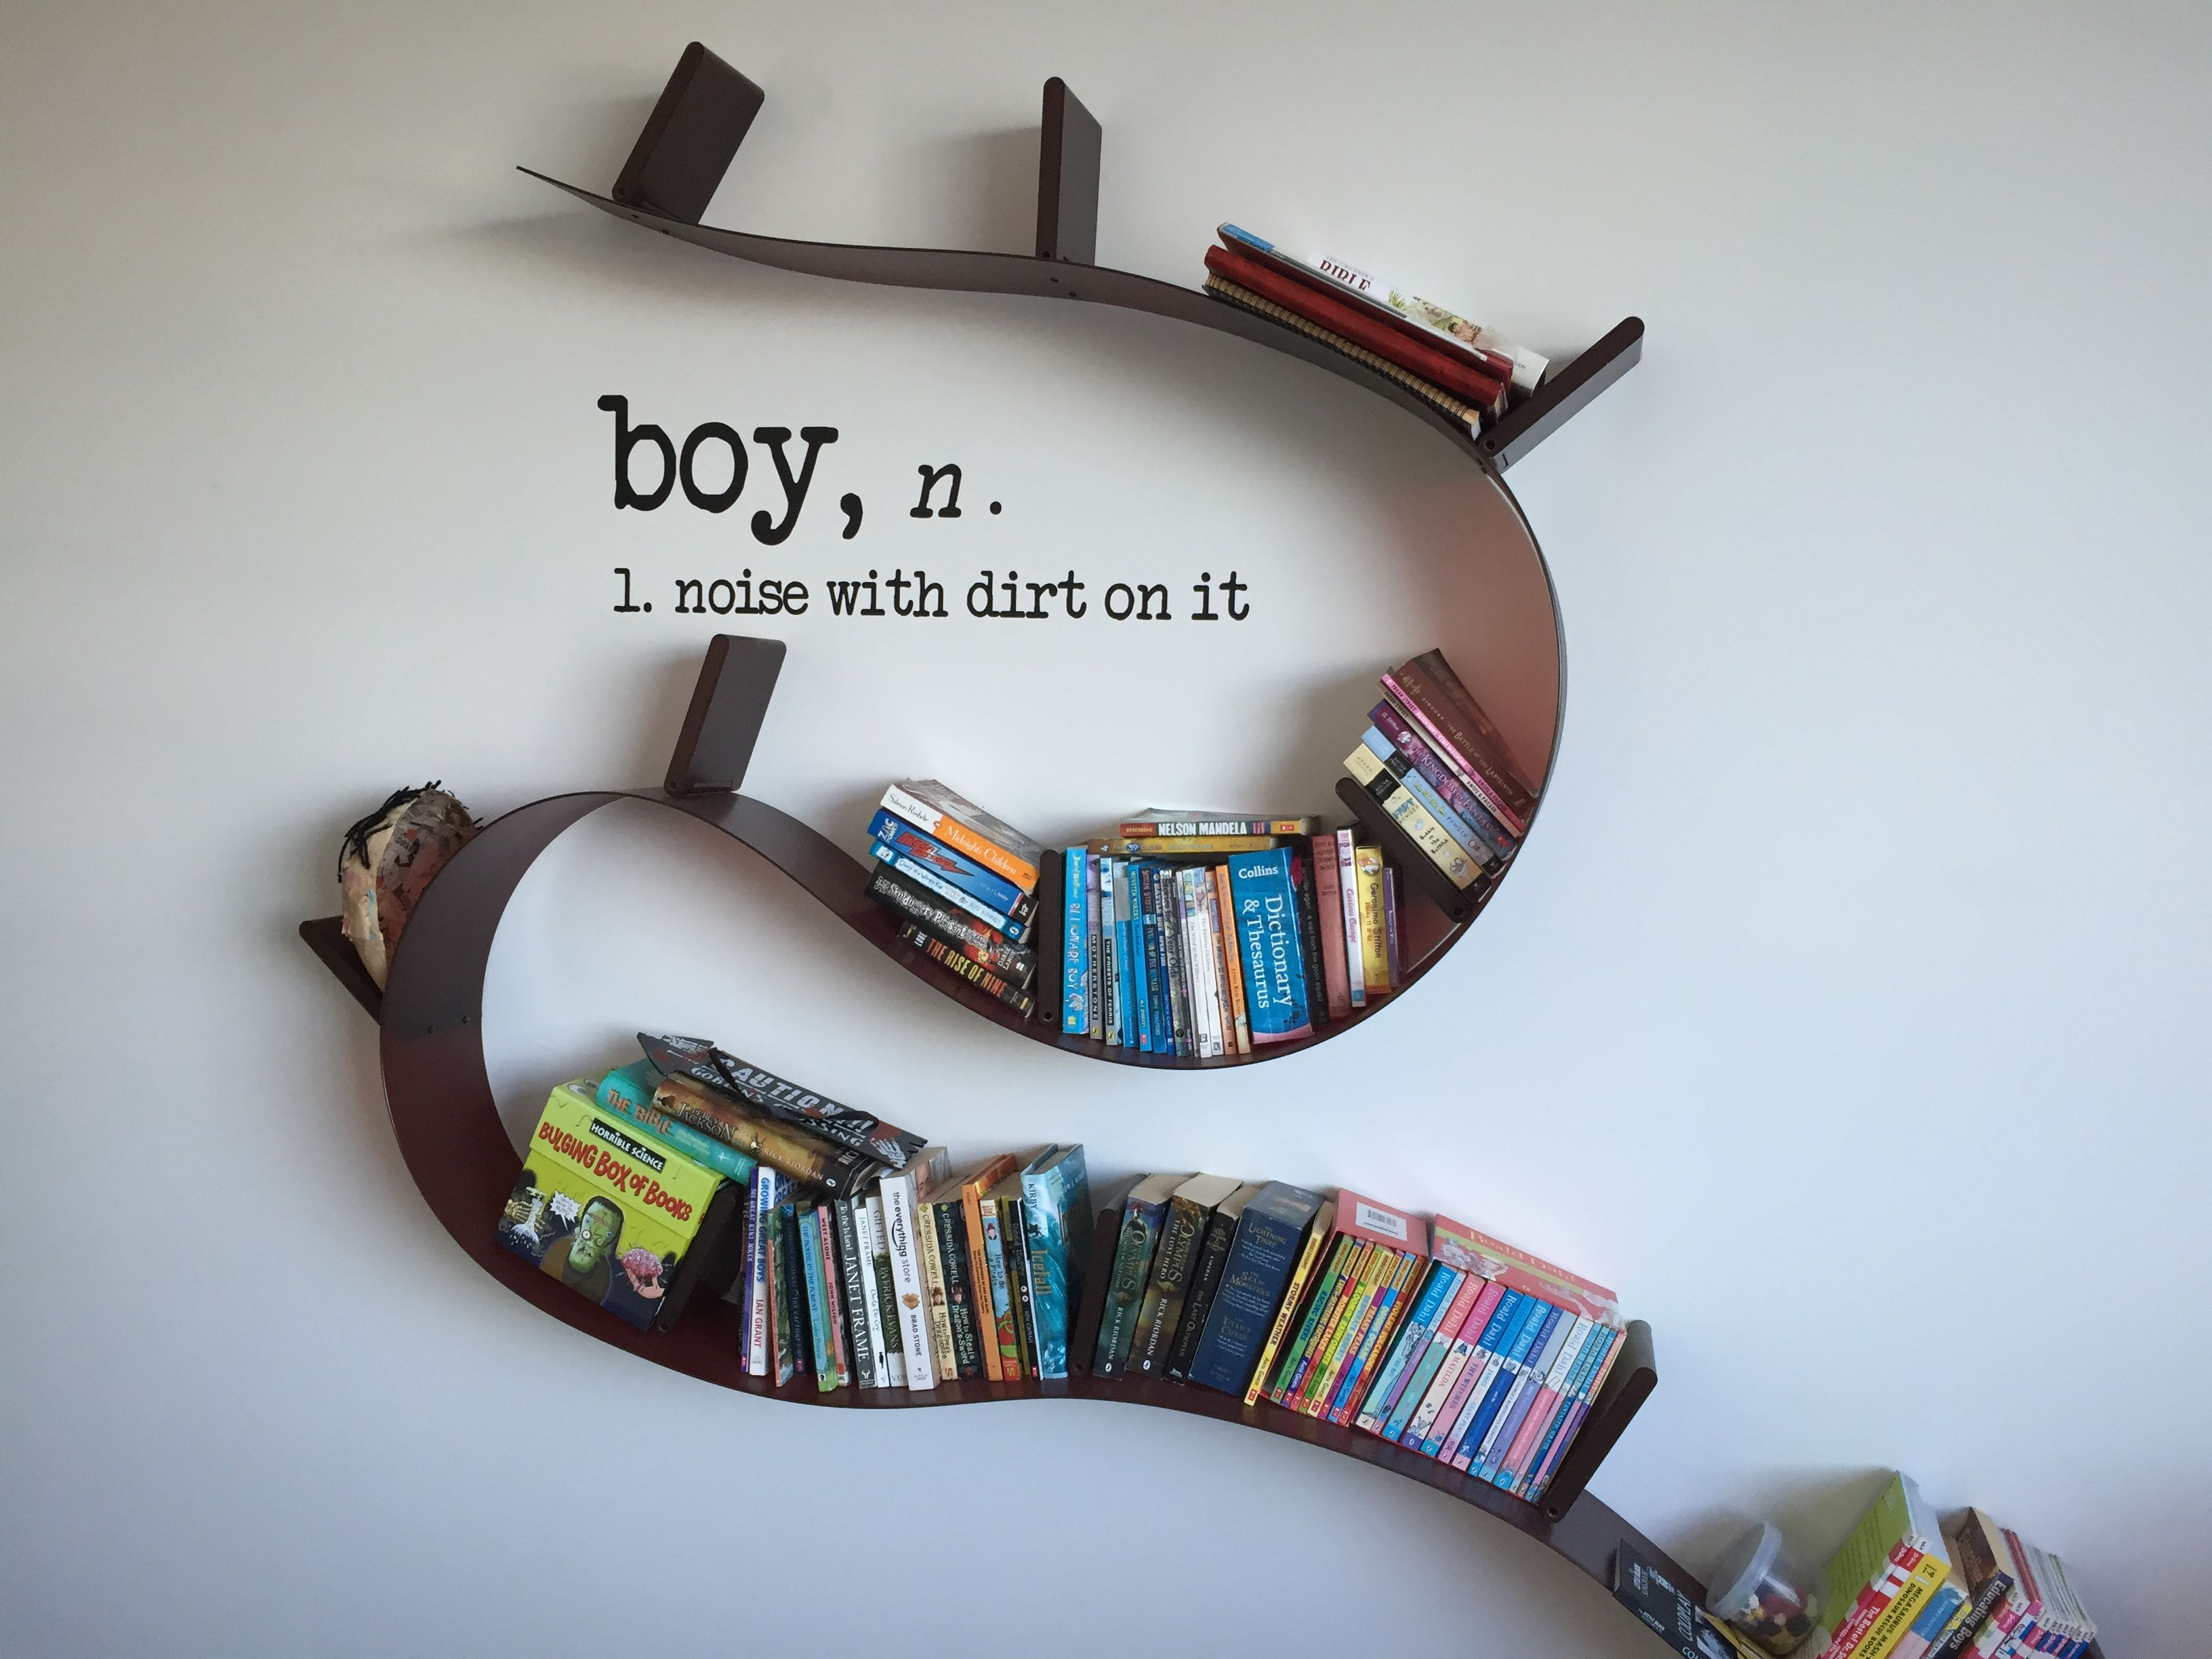 Fancy Kartell Bookworm bookshelf designed by Rob Arad with Grafix Wall Art boys noun sticker